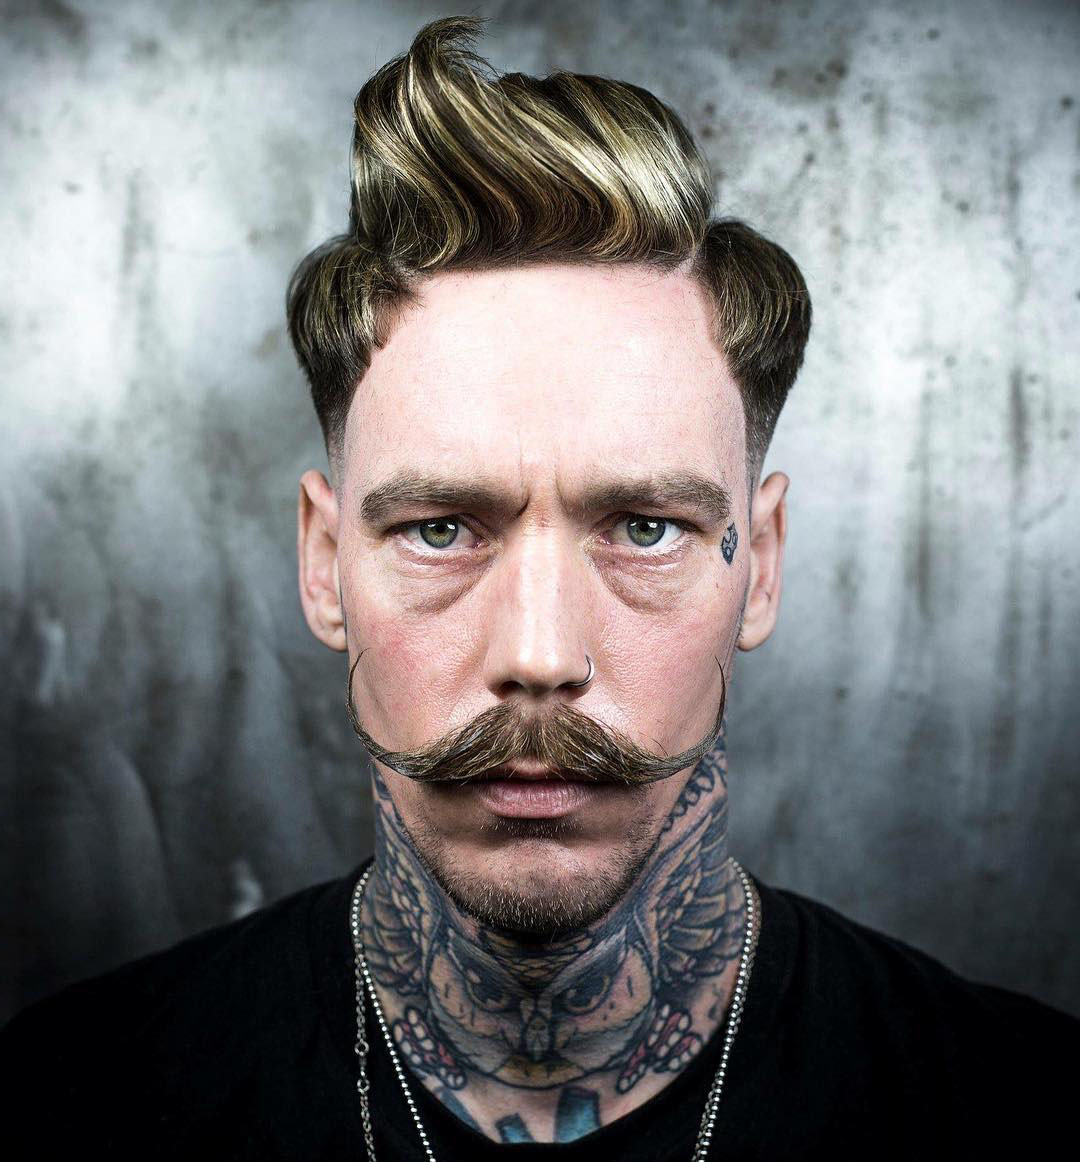 Pompadour Haircut with Medium Fade and Moustache